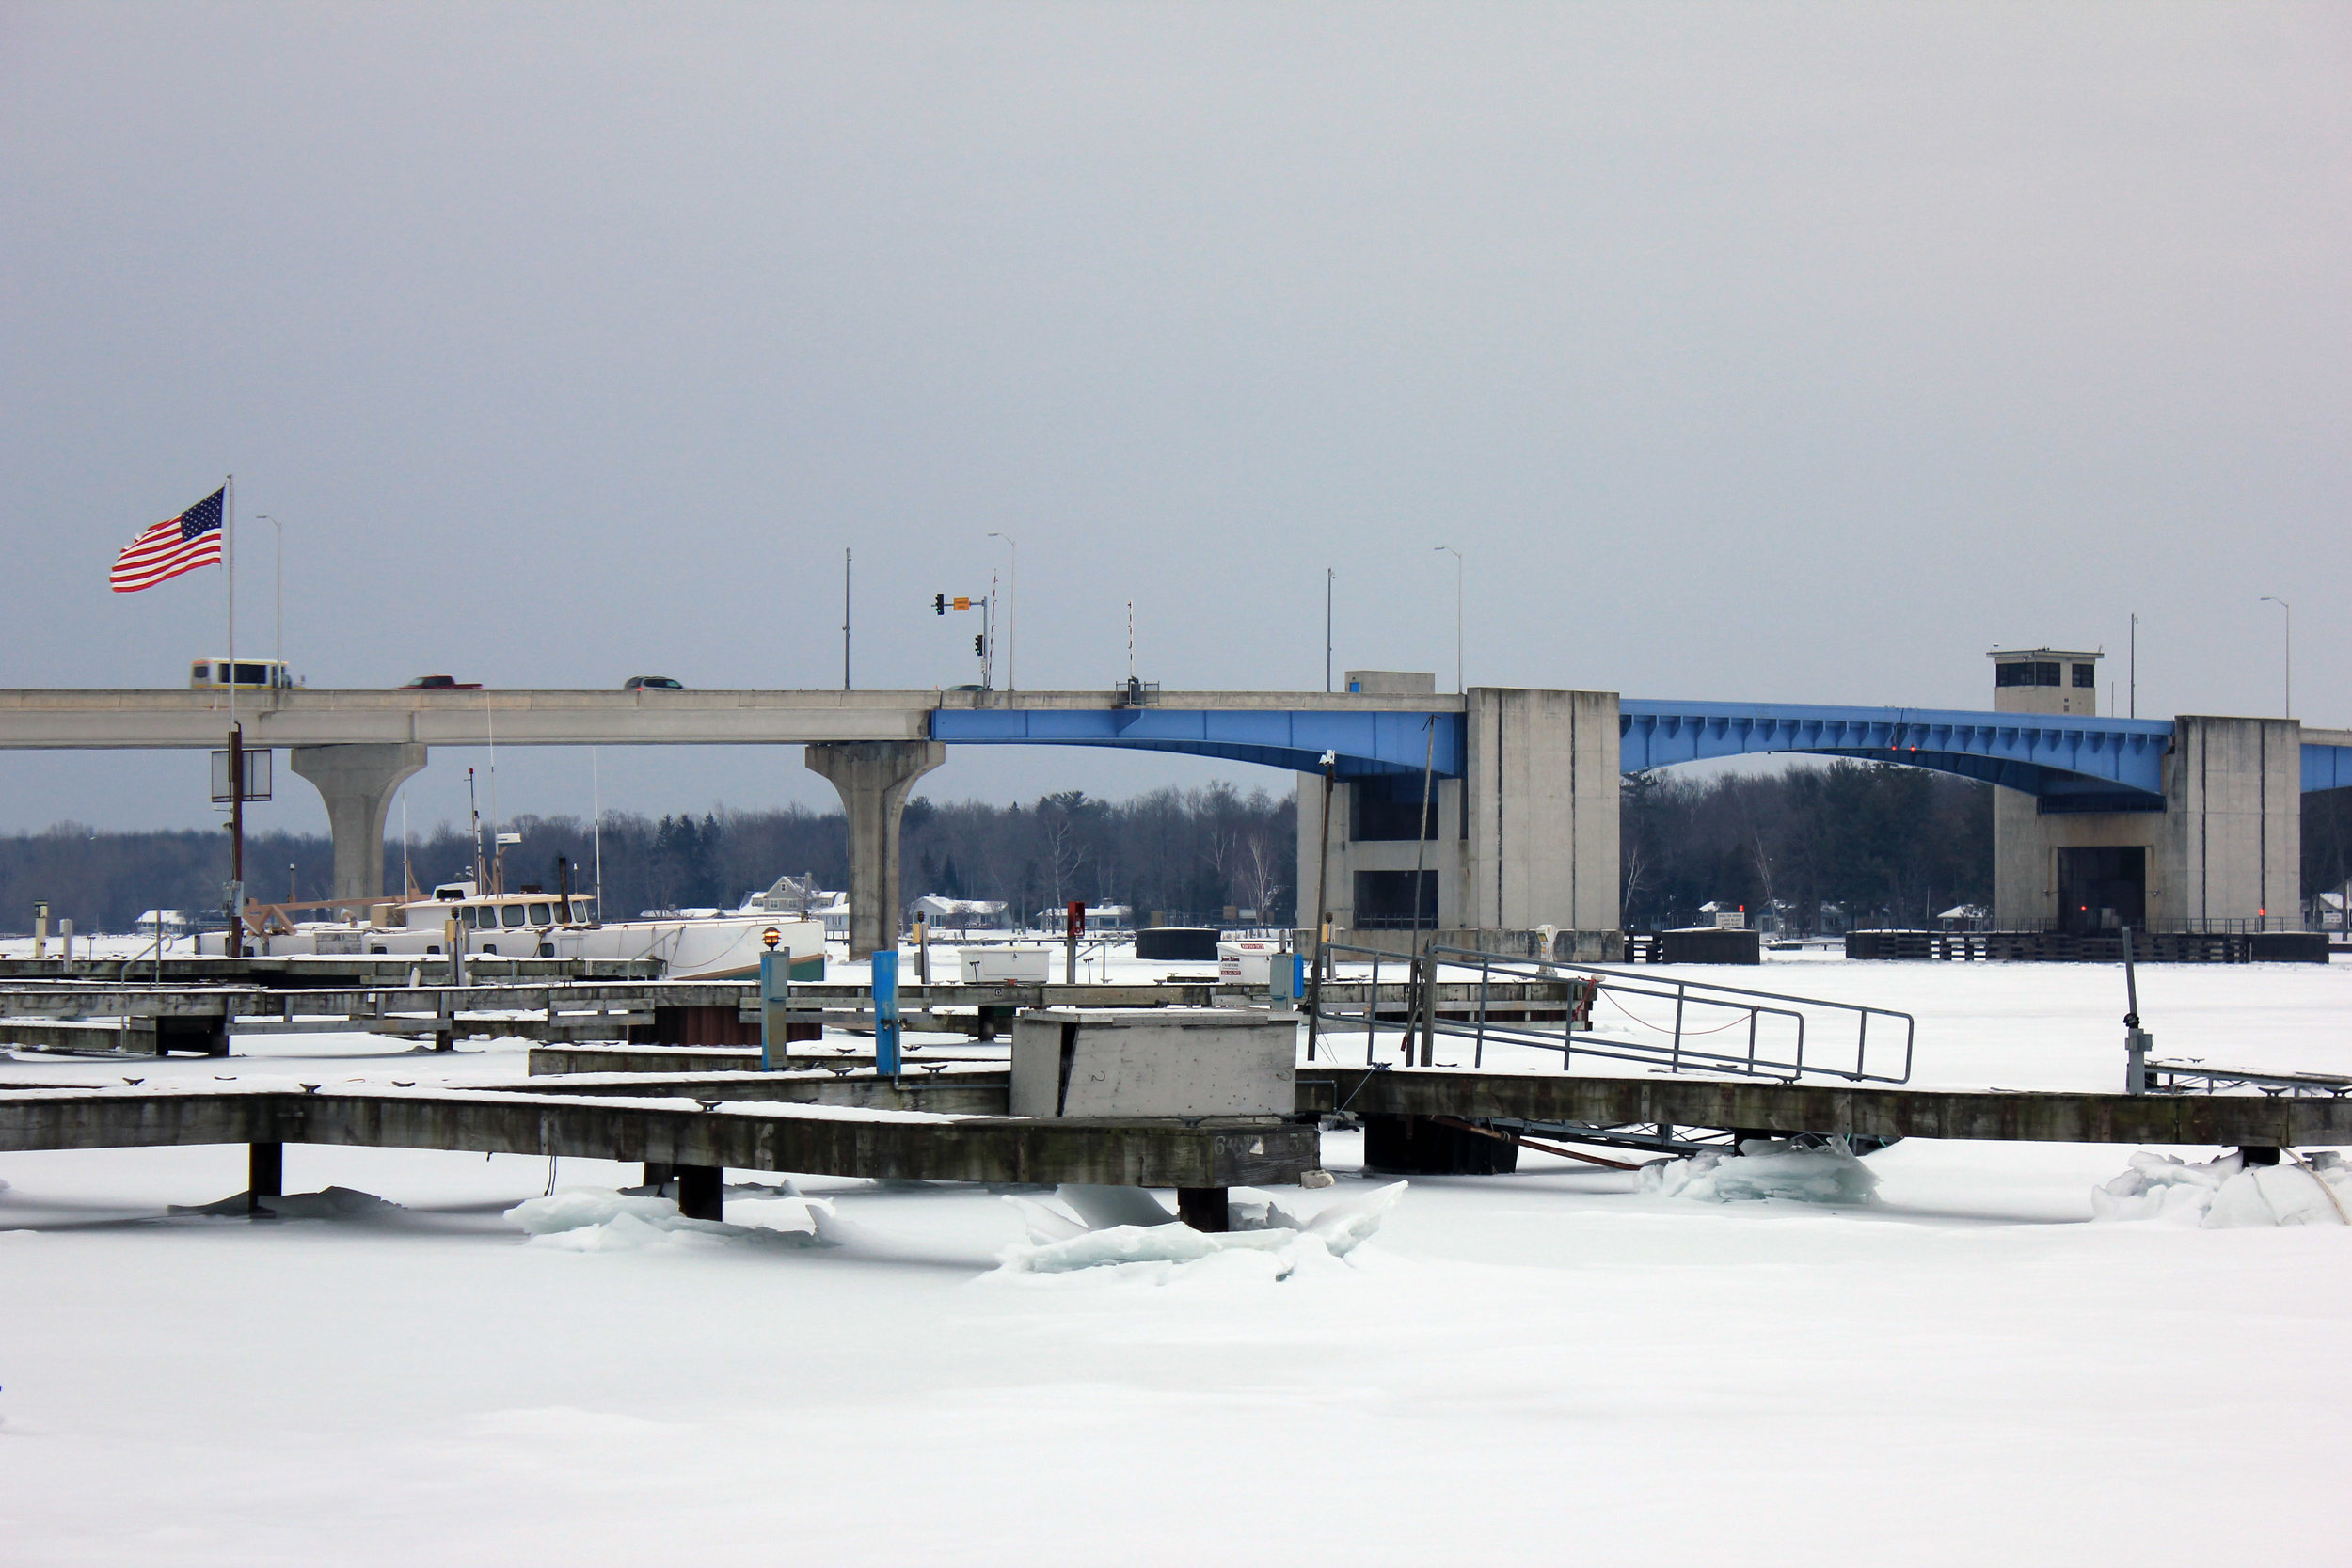 wisconsin-sturgeon-bay-docks-and-bridge.jpg